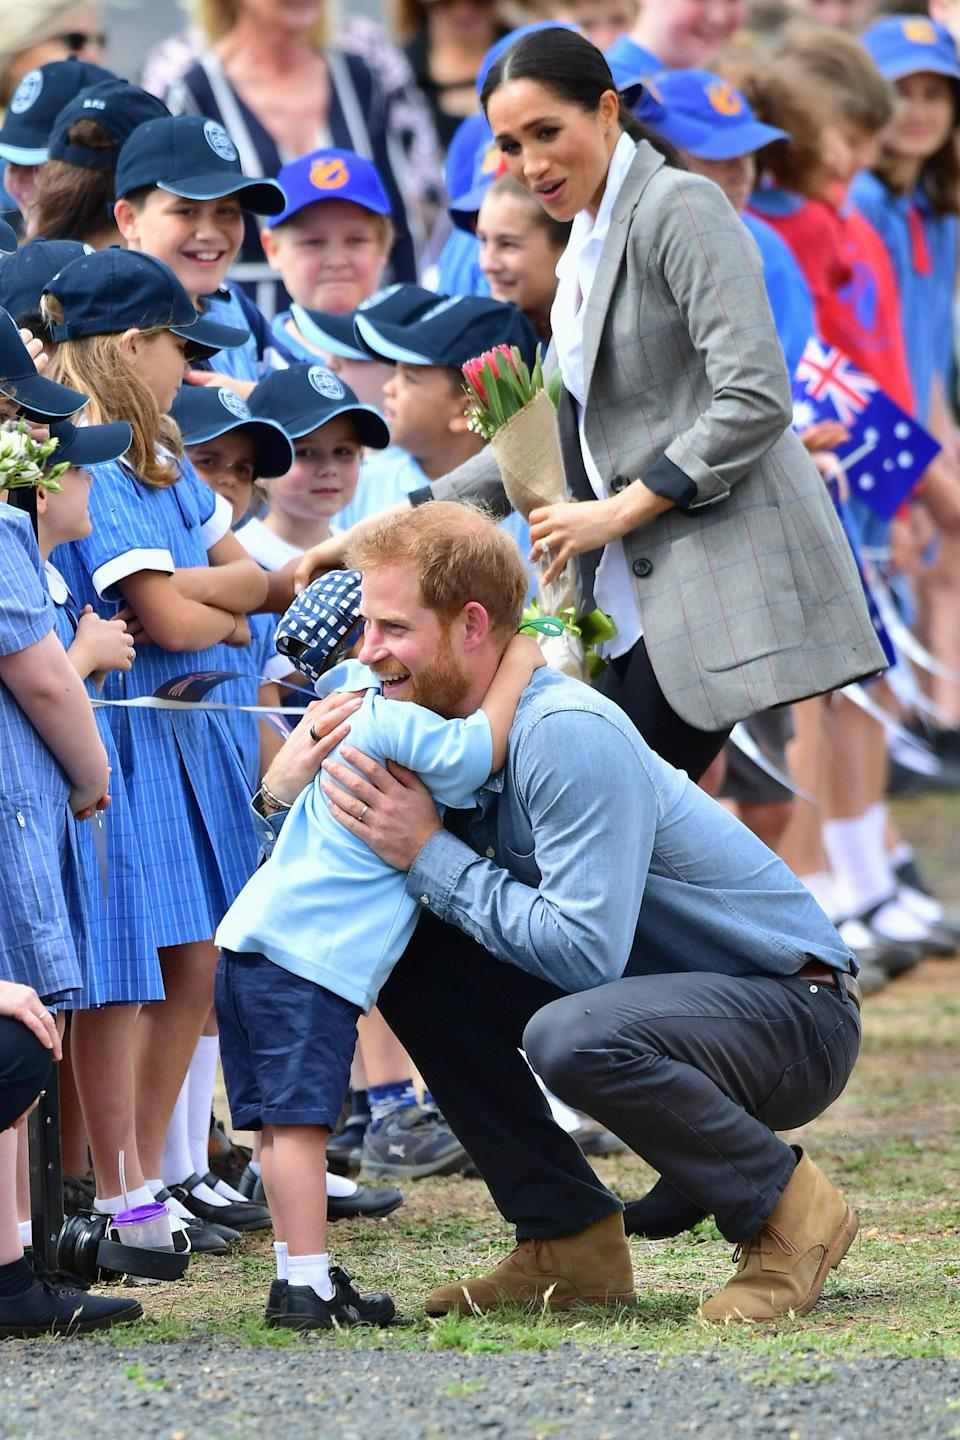 Luke Vincent, a Dubbo schoolboy, was overjoyed to meet Prince Harry. Source: Getty